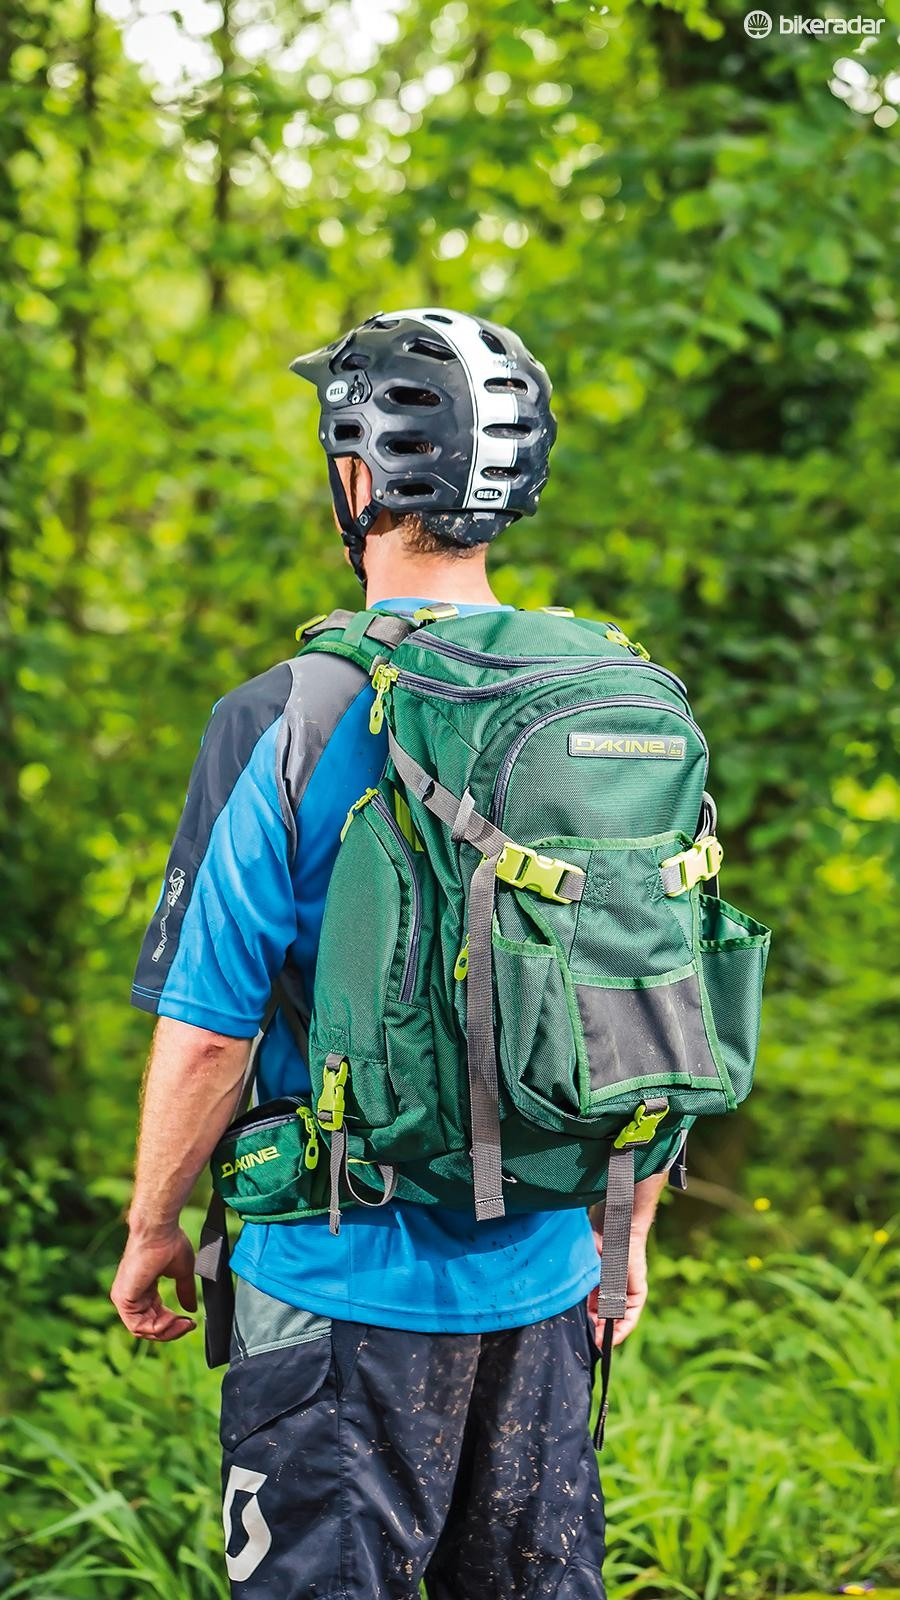 If you do find yourself heading into the woods packing a chainsaw, the Dakine Builders 29l pack will suit you down to the ground. For the rest of us it may be overkill